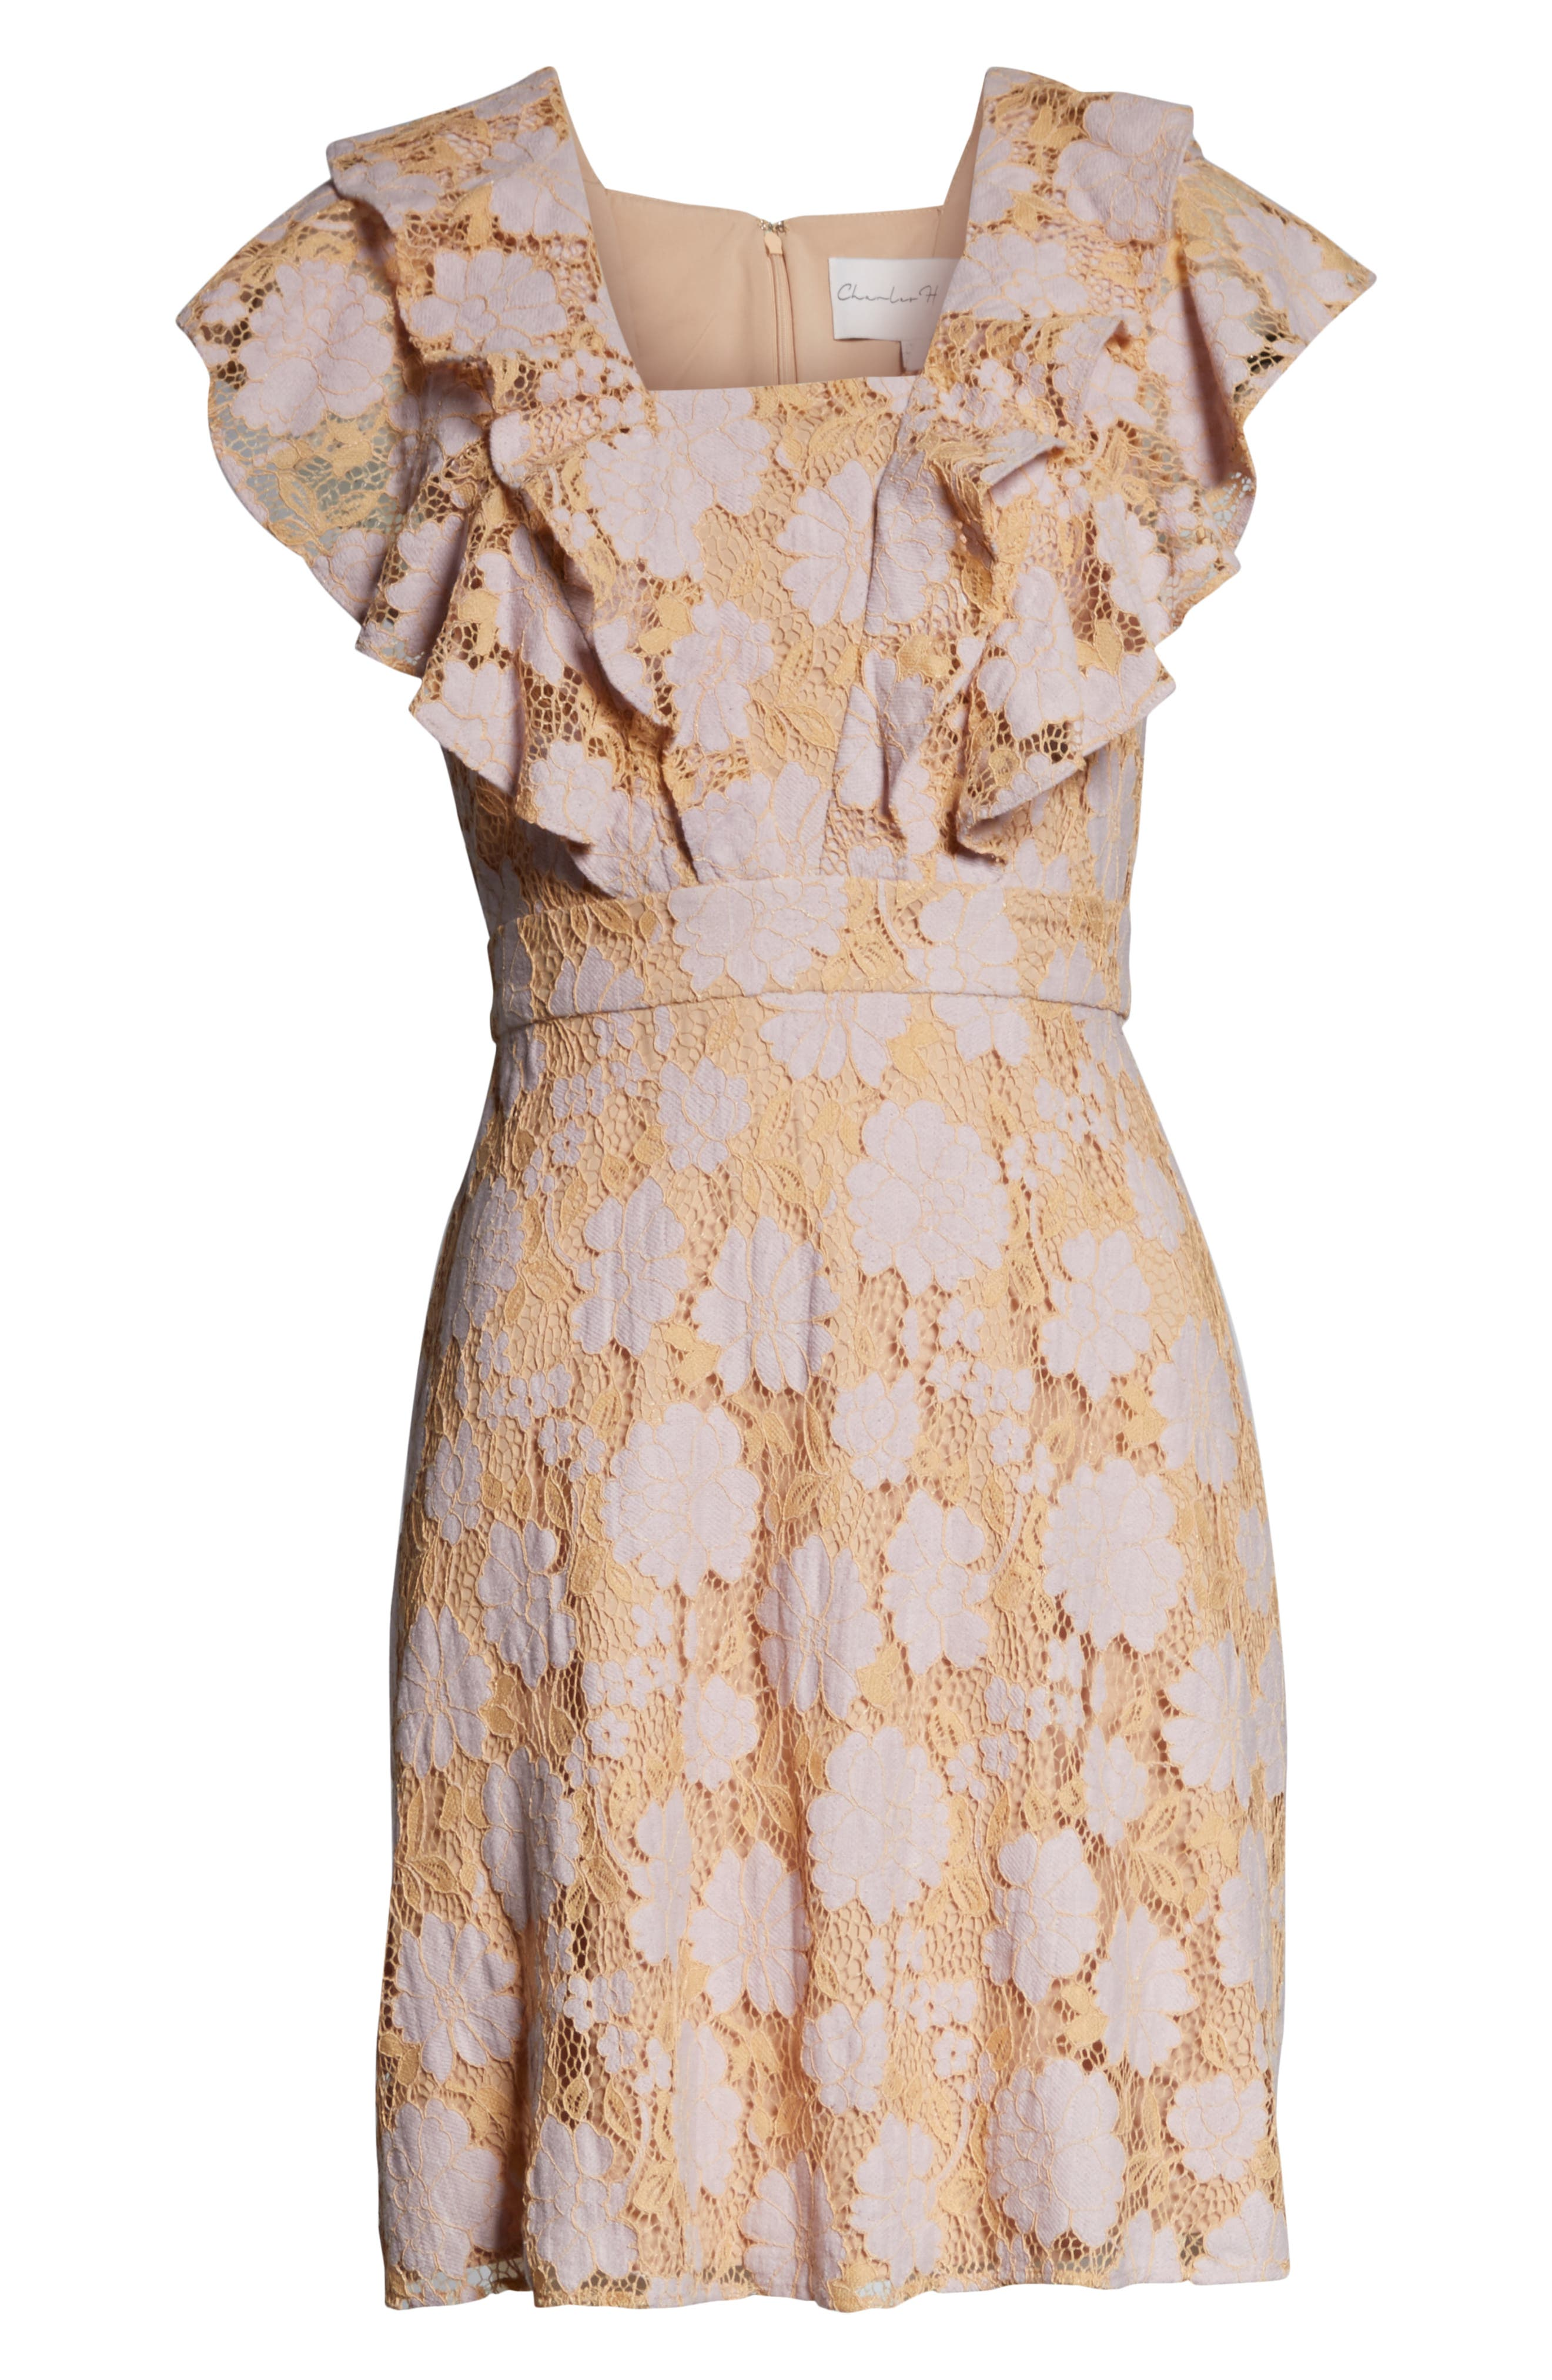 CHARLES HENRY, Ruffle Lace Minidress, Alternate thumbnail 7, color, LILAC-PINK LACE